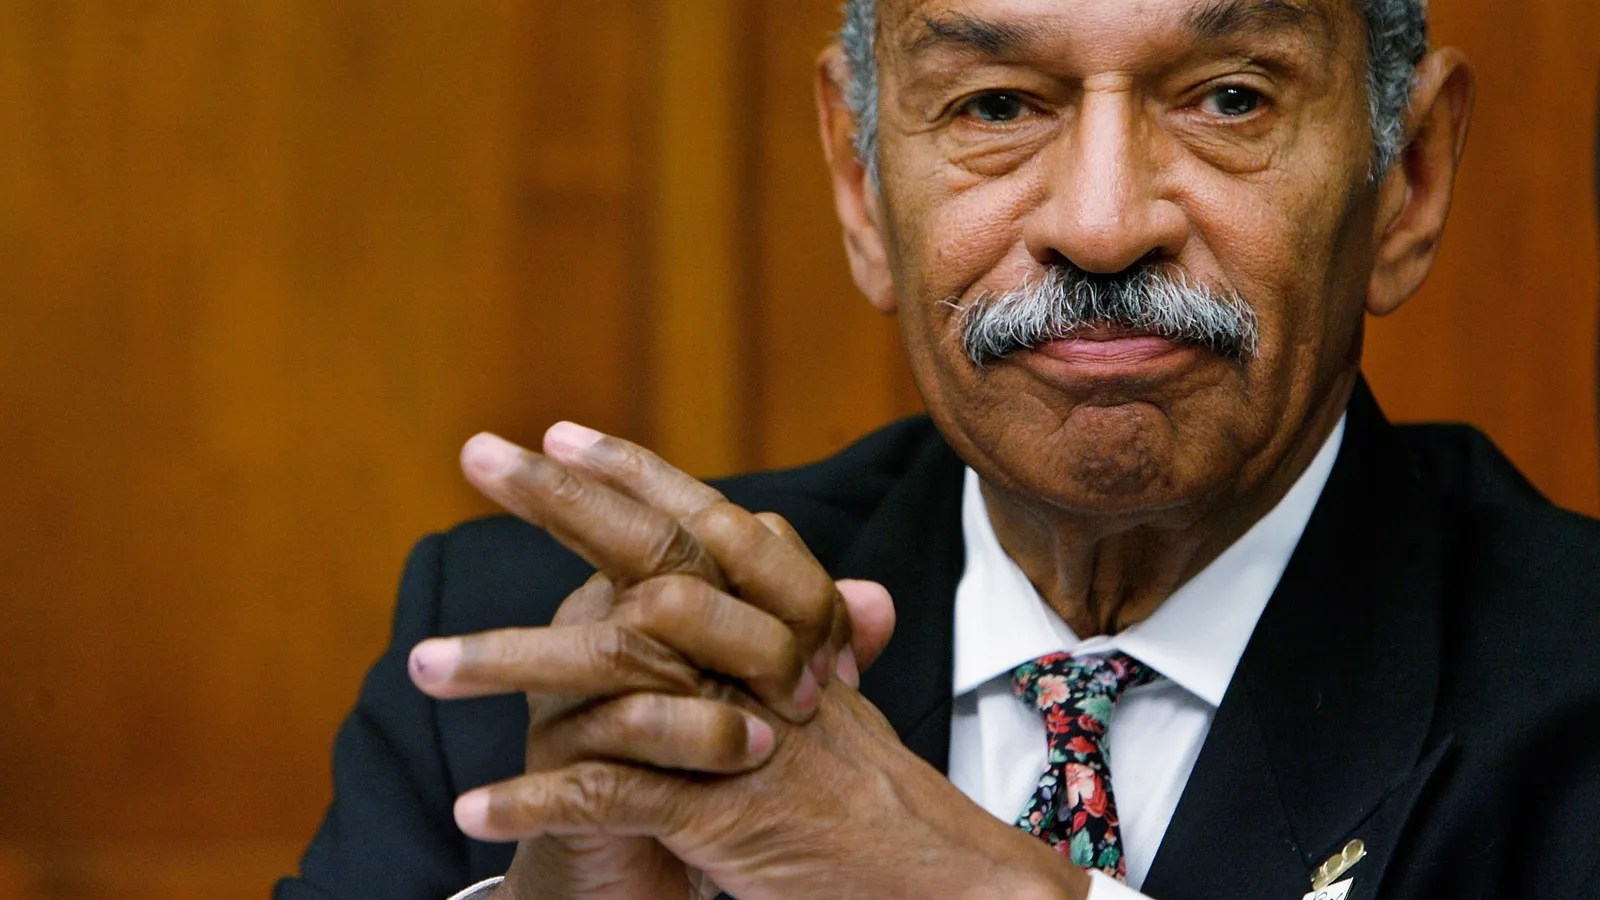 Rep John Conyers Steps Down Amidual Harassment Allegations Double Standards Win Again